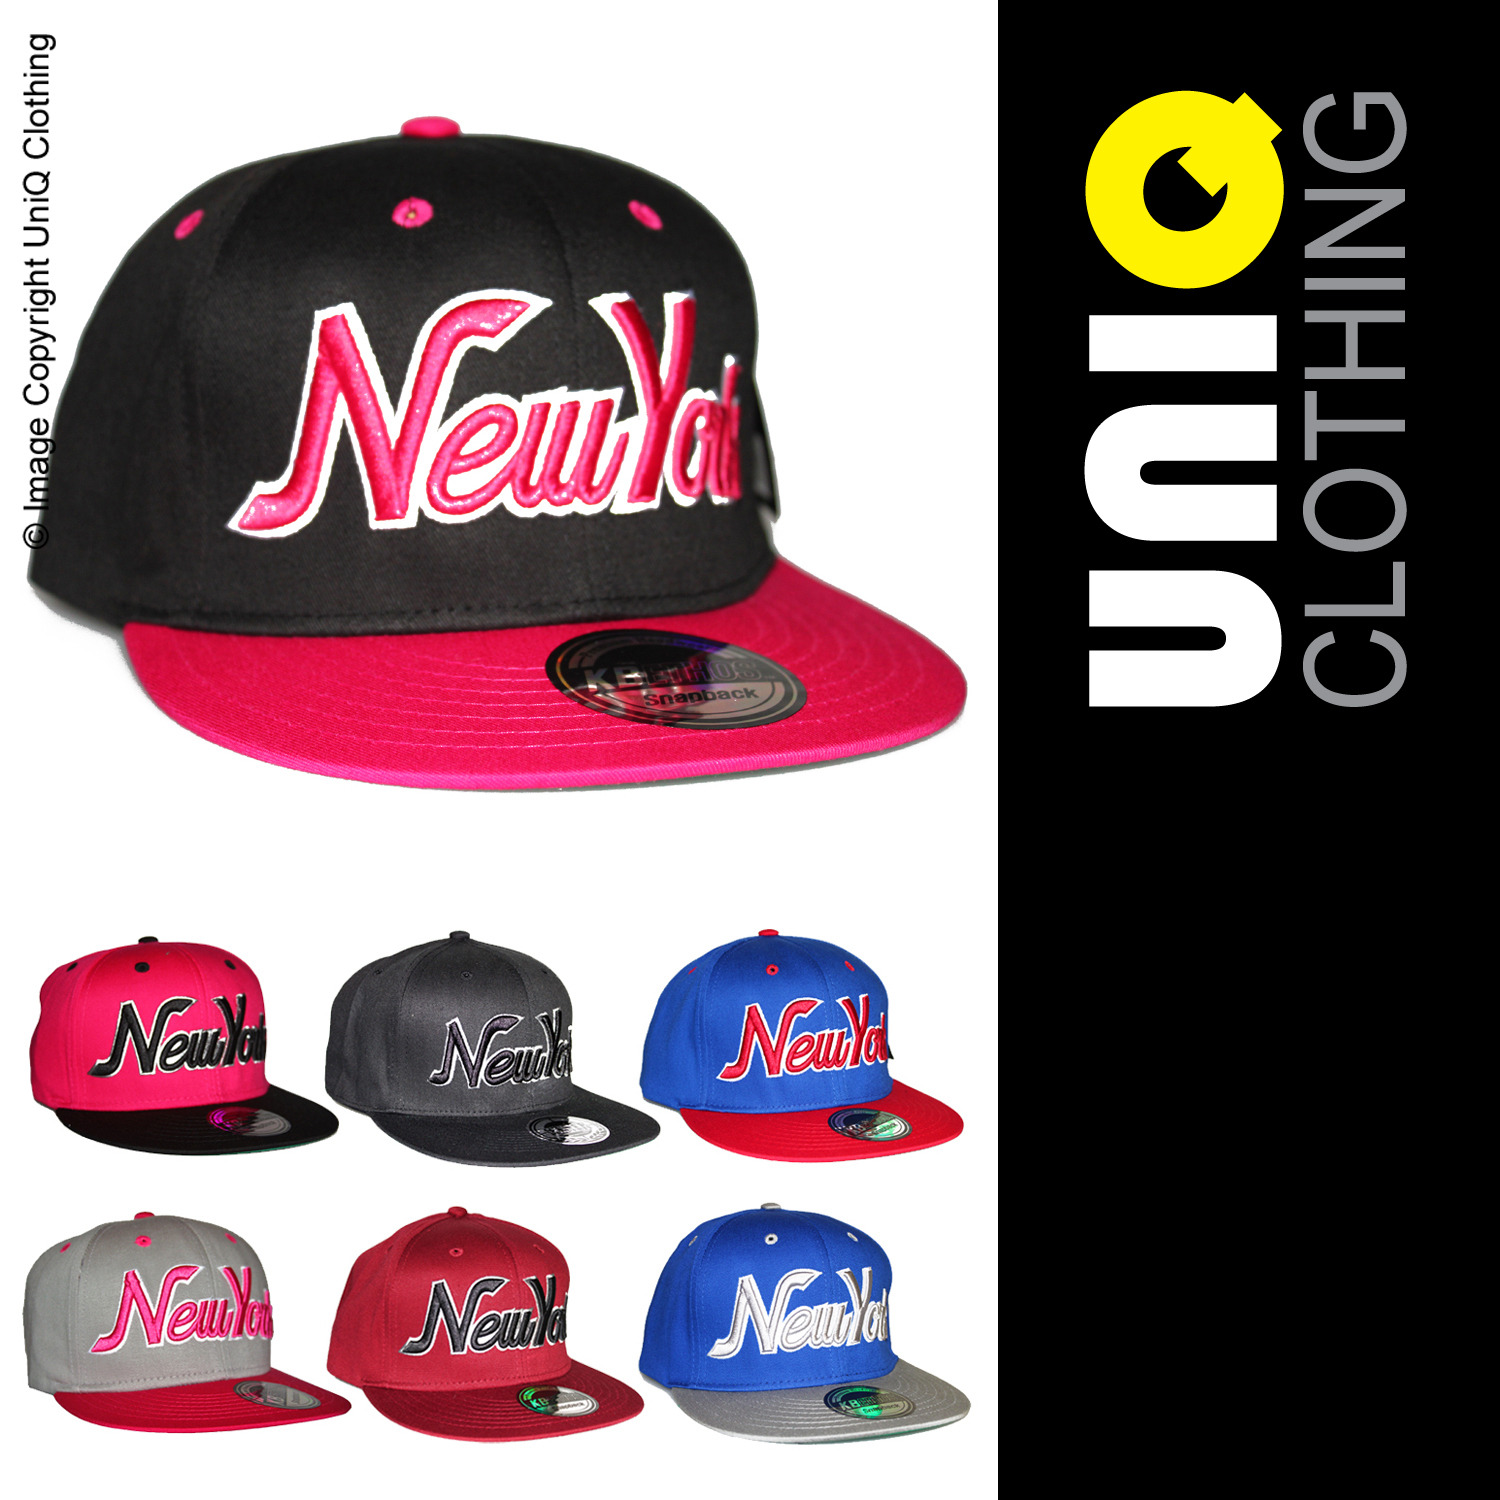 UNIQ-UK Mens/Womens CAP/HAT Adjustable Size/Snap Back/Baseball/Retro L1 Enlarged Preview